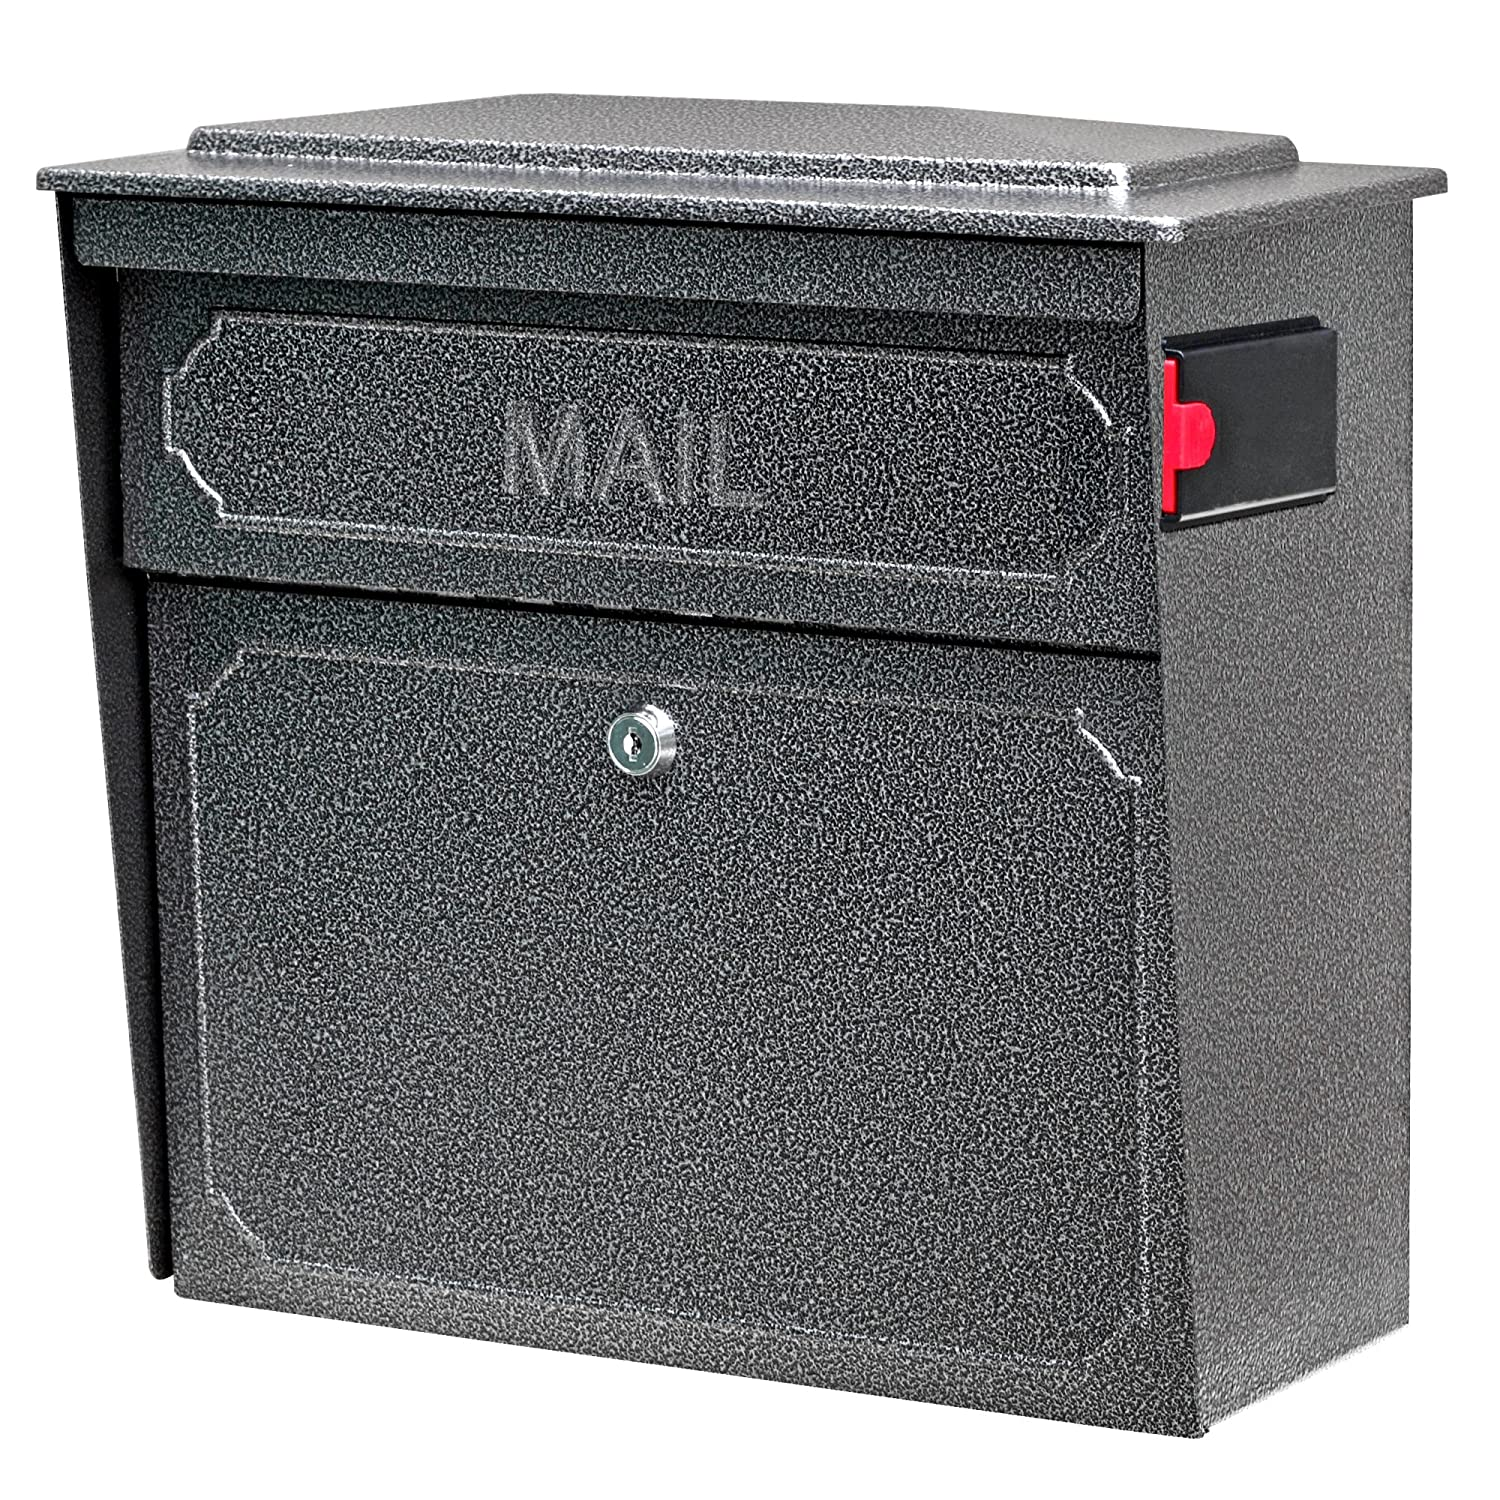 Mail Boss 7175 Townhouse Locking Wall Mount Mailbox